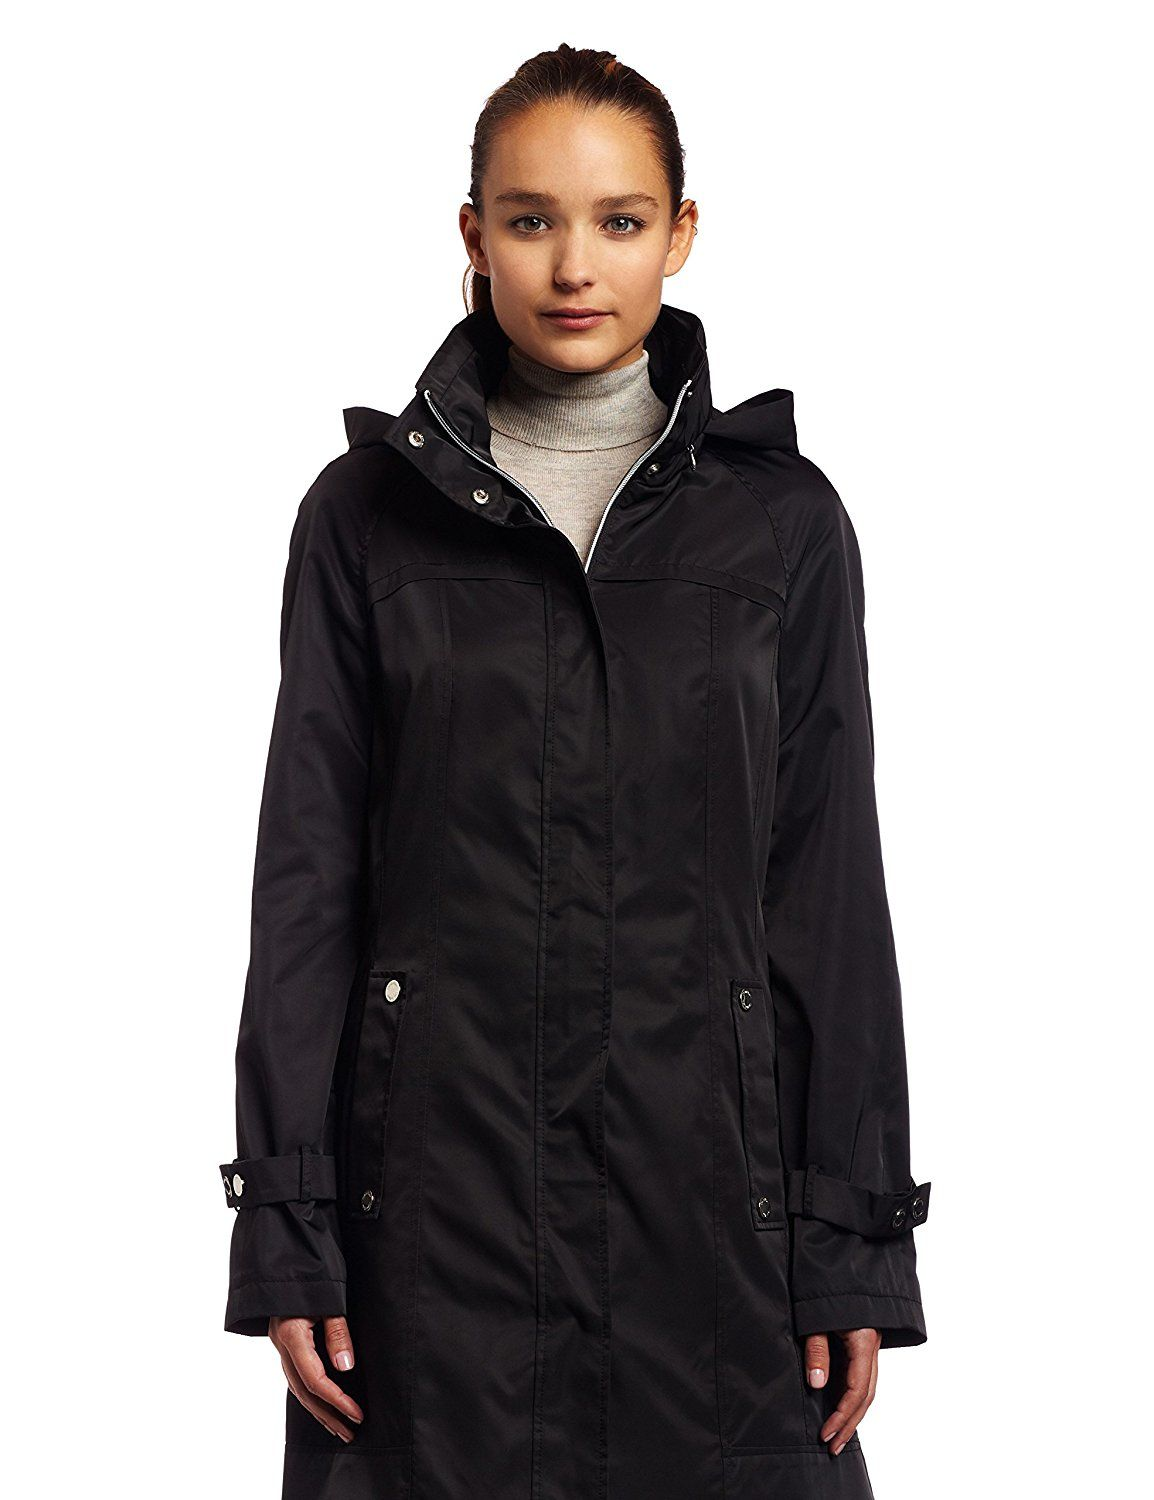 Calvin Klein Women S Long Packable Anorak Jacket This Is An Amazon Affiliate Link Read More At The Image Li Lightweight Jacket Womens Anorak Jacket Anorak [ 1500 x 1154 Pixel ]